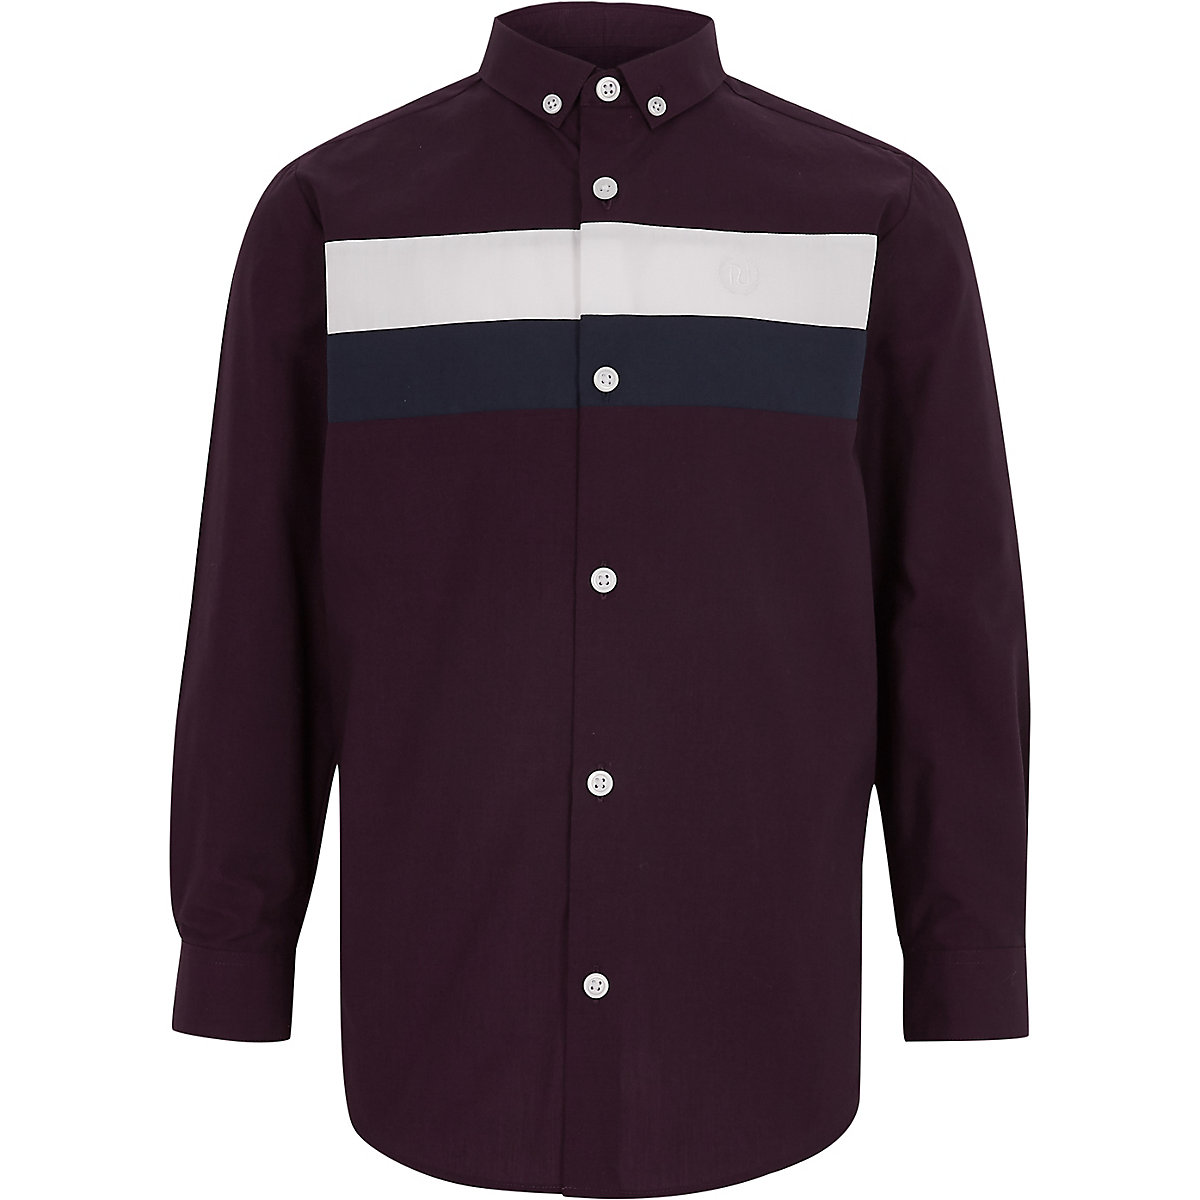 Boys purple color block shirt